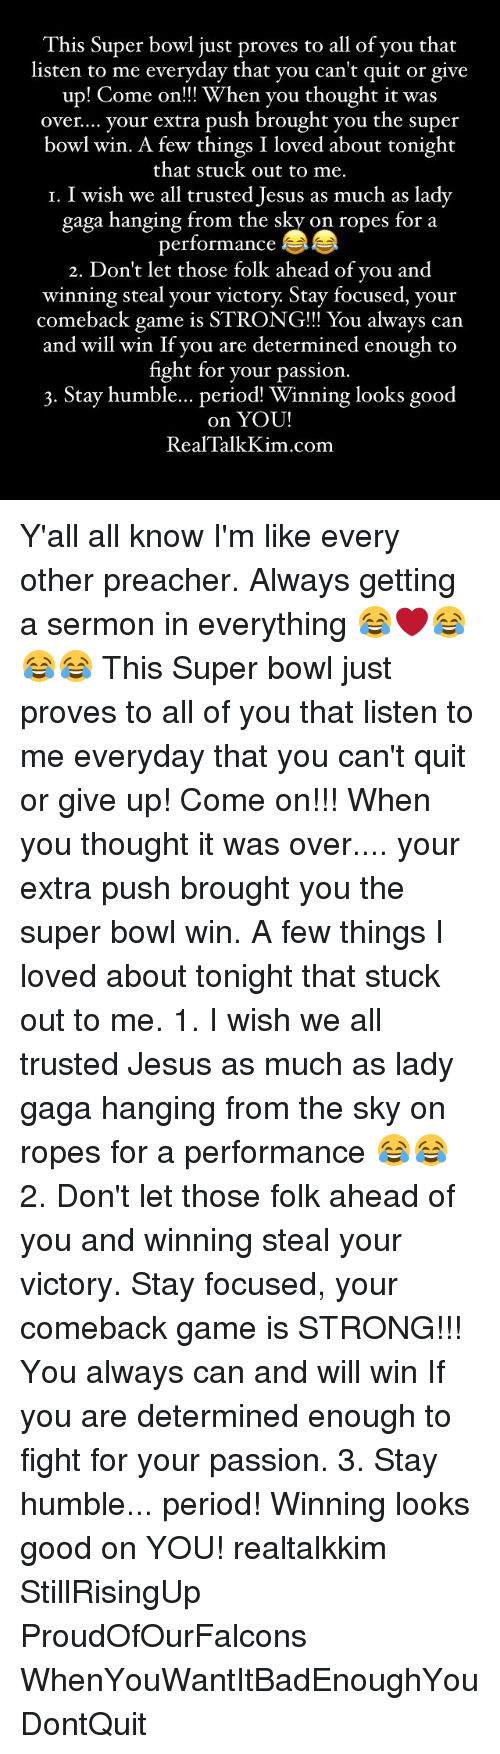 Lady Gaga, Memes, and Preacher: This Super bowl just proves to all of you that  listen to me everyday that you can't quit or give  up! Come on!!! When you thought it was  over.... your extra push brought you the super  bowl win. A few things I loved about tonight  that stuck out to me  I. I wish we all trusted Jesus as much as lady  gaga hanging from the sky on ropes for a  performance  2. Don't let those folk ahead of you and  winning steal your victory Stay focused, your  comeback game is STRONG!!! You always can  and will win If you are determined enough to  fight for your passion.  3. Stay humble... period Winning looks good  on YOU!  Real Talk Kim com Y'all all know I'm like every other preacher. Always getting a sermon in everything 😂❤️😂😂😂 This Super bowl just proves to all of you that listen to me everyday that you can't quit or give up! Come on!!! When you thought it was over.... your extra push brought you the super bowl win. A few things I loved about tonight that stuck out to me. 1. I wish we all trusted Jesus as much as lady gaga hanging from the sky on ropes for a performance 😂😂 2. Don't let those folk ahead of you and winning steal your victory. Stay focused, your comeback game is STRONG!!! You always can and will win If you are determined enough to fight for your passion. 3. Stay humble... period! Winning looks good on YOU! realtalkkim StillRisingUp ProudOfOurFalcons WhenYouWantItBadEnoughYouDontQuit